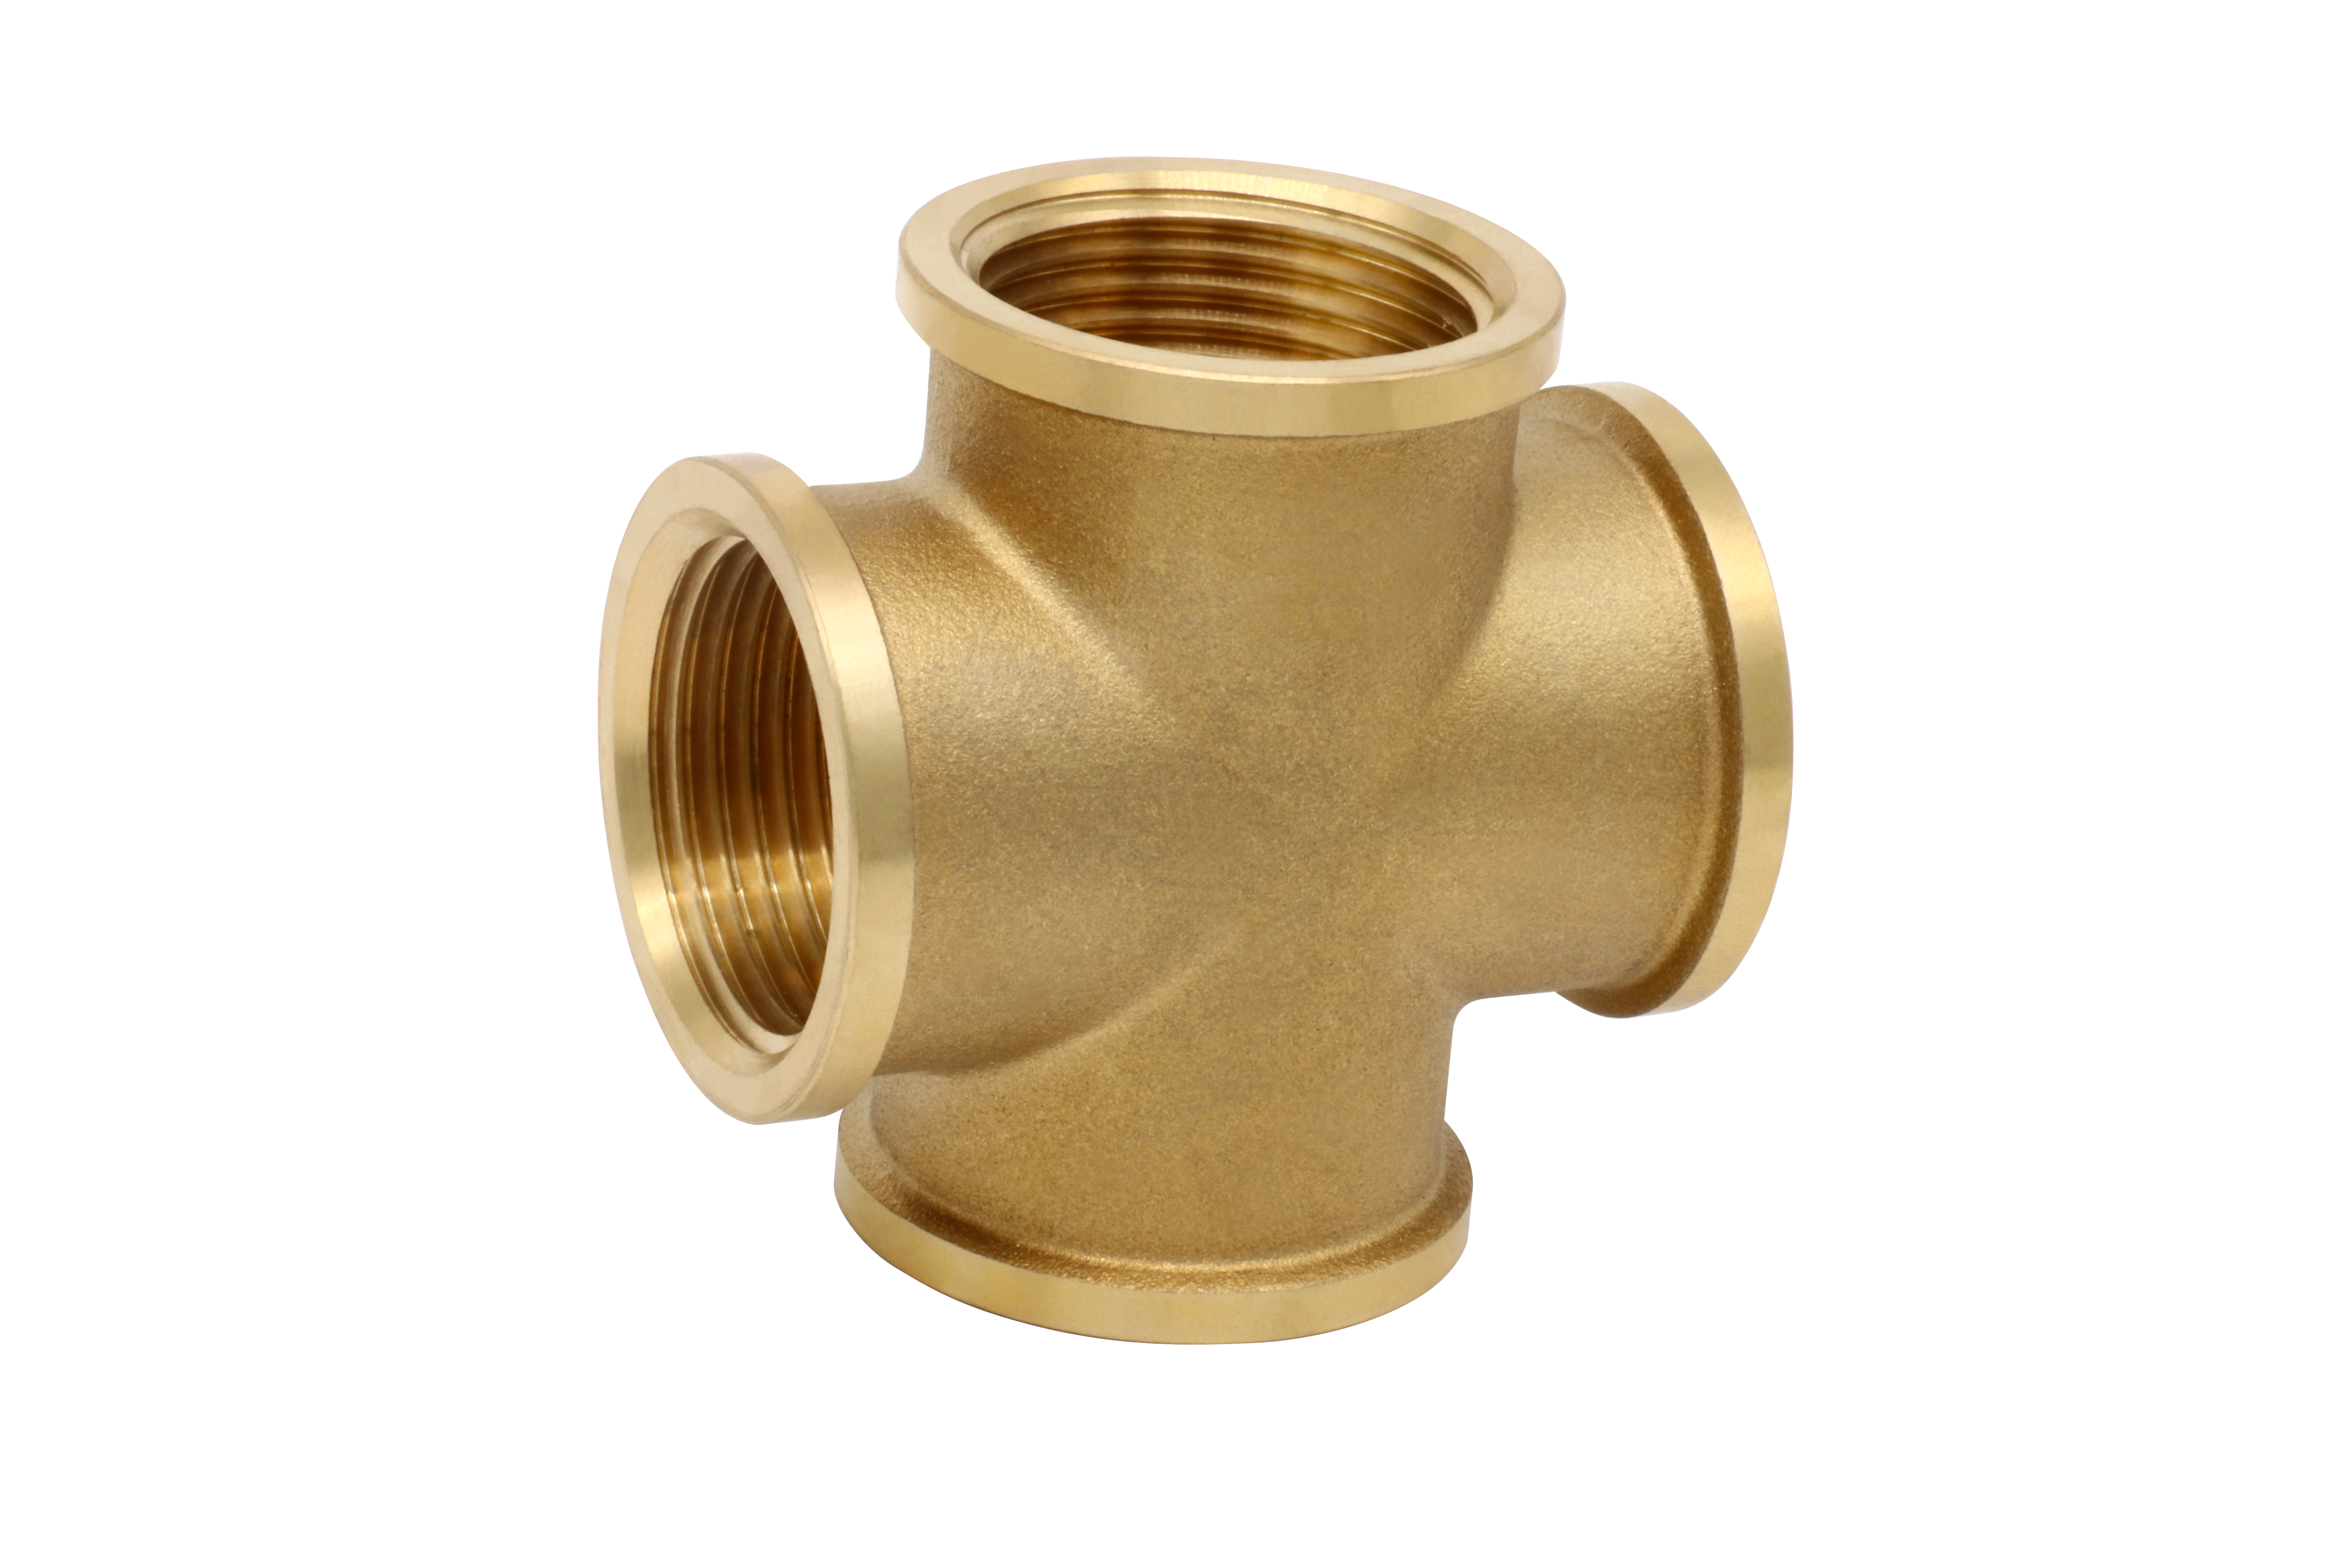 TEE_Brass 4-Way Connector Fittings_Art.TS 2592